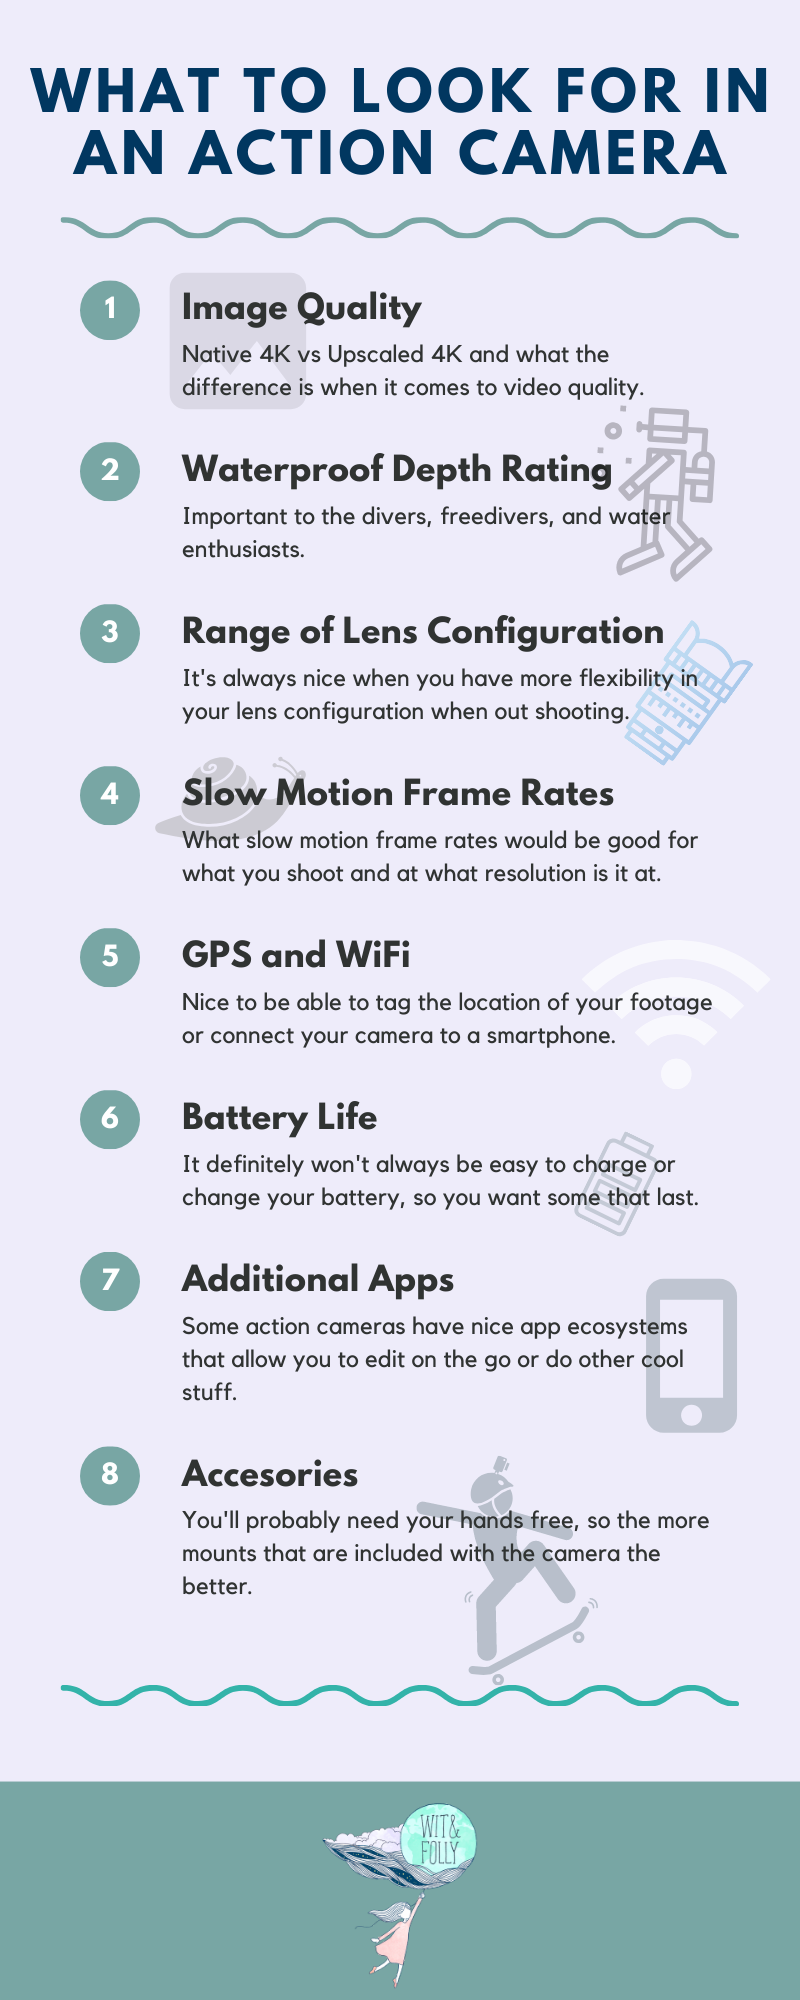 infographic illustration of what to look for in an action camera